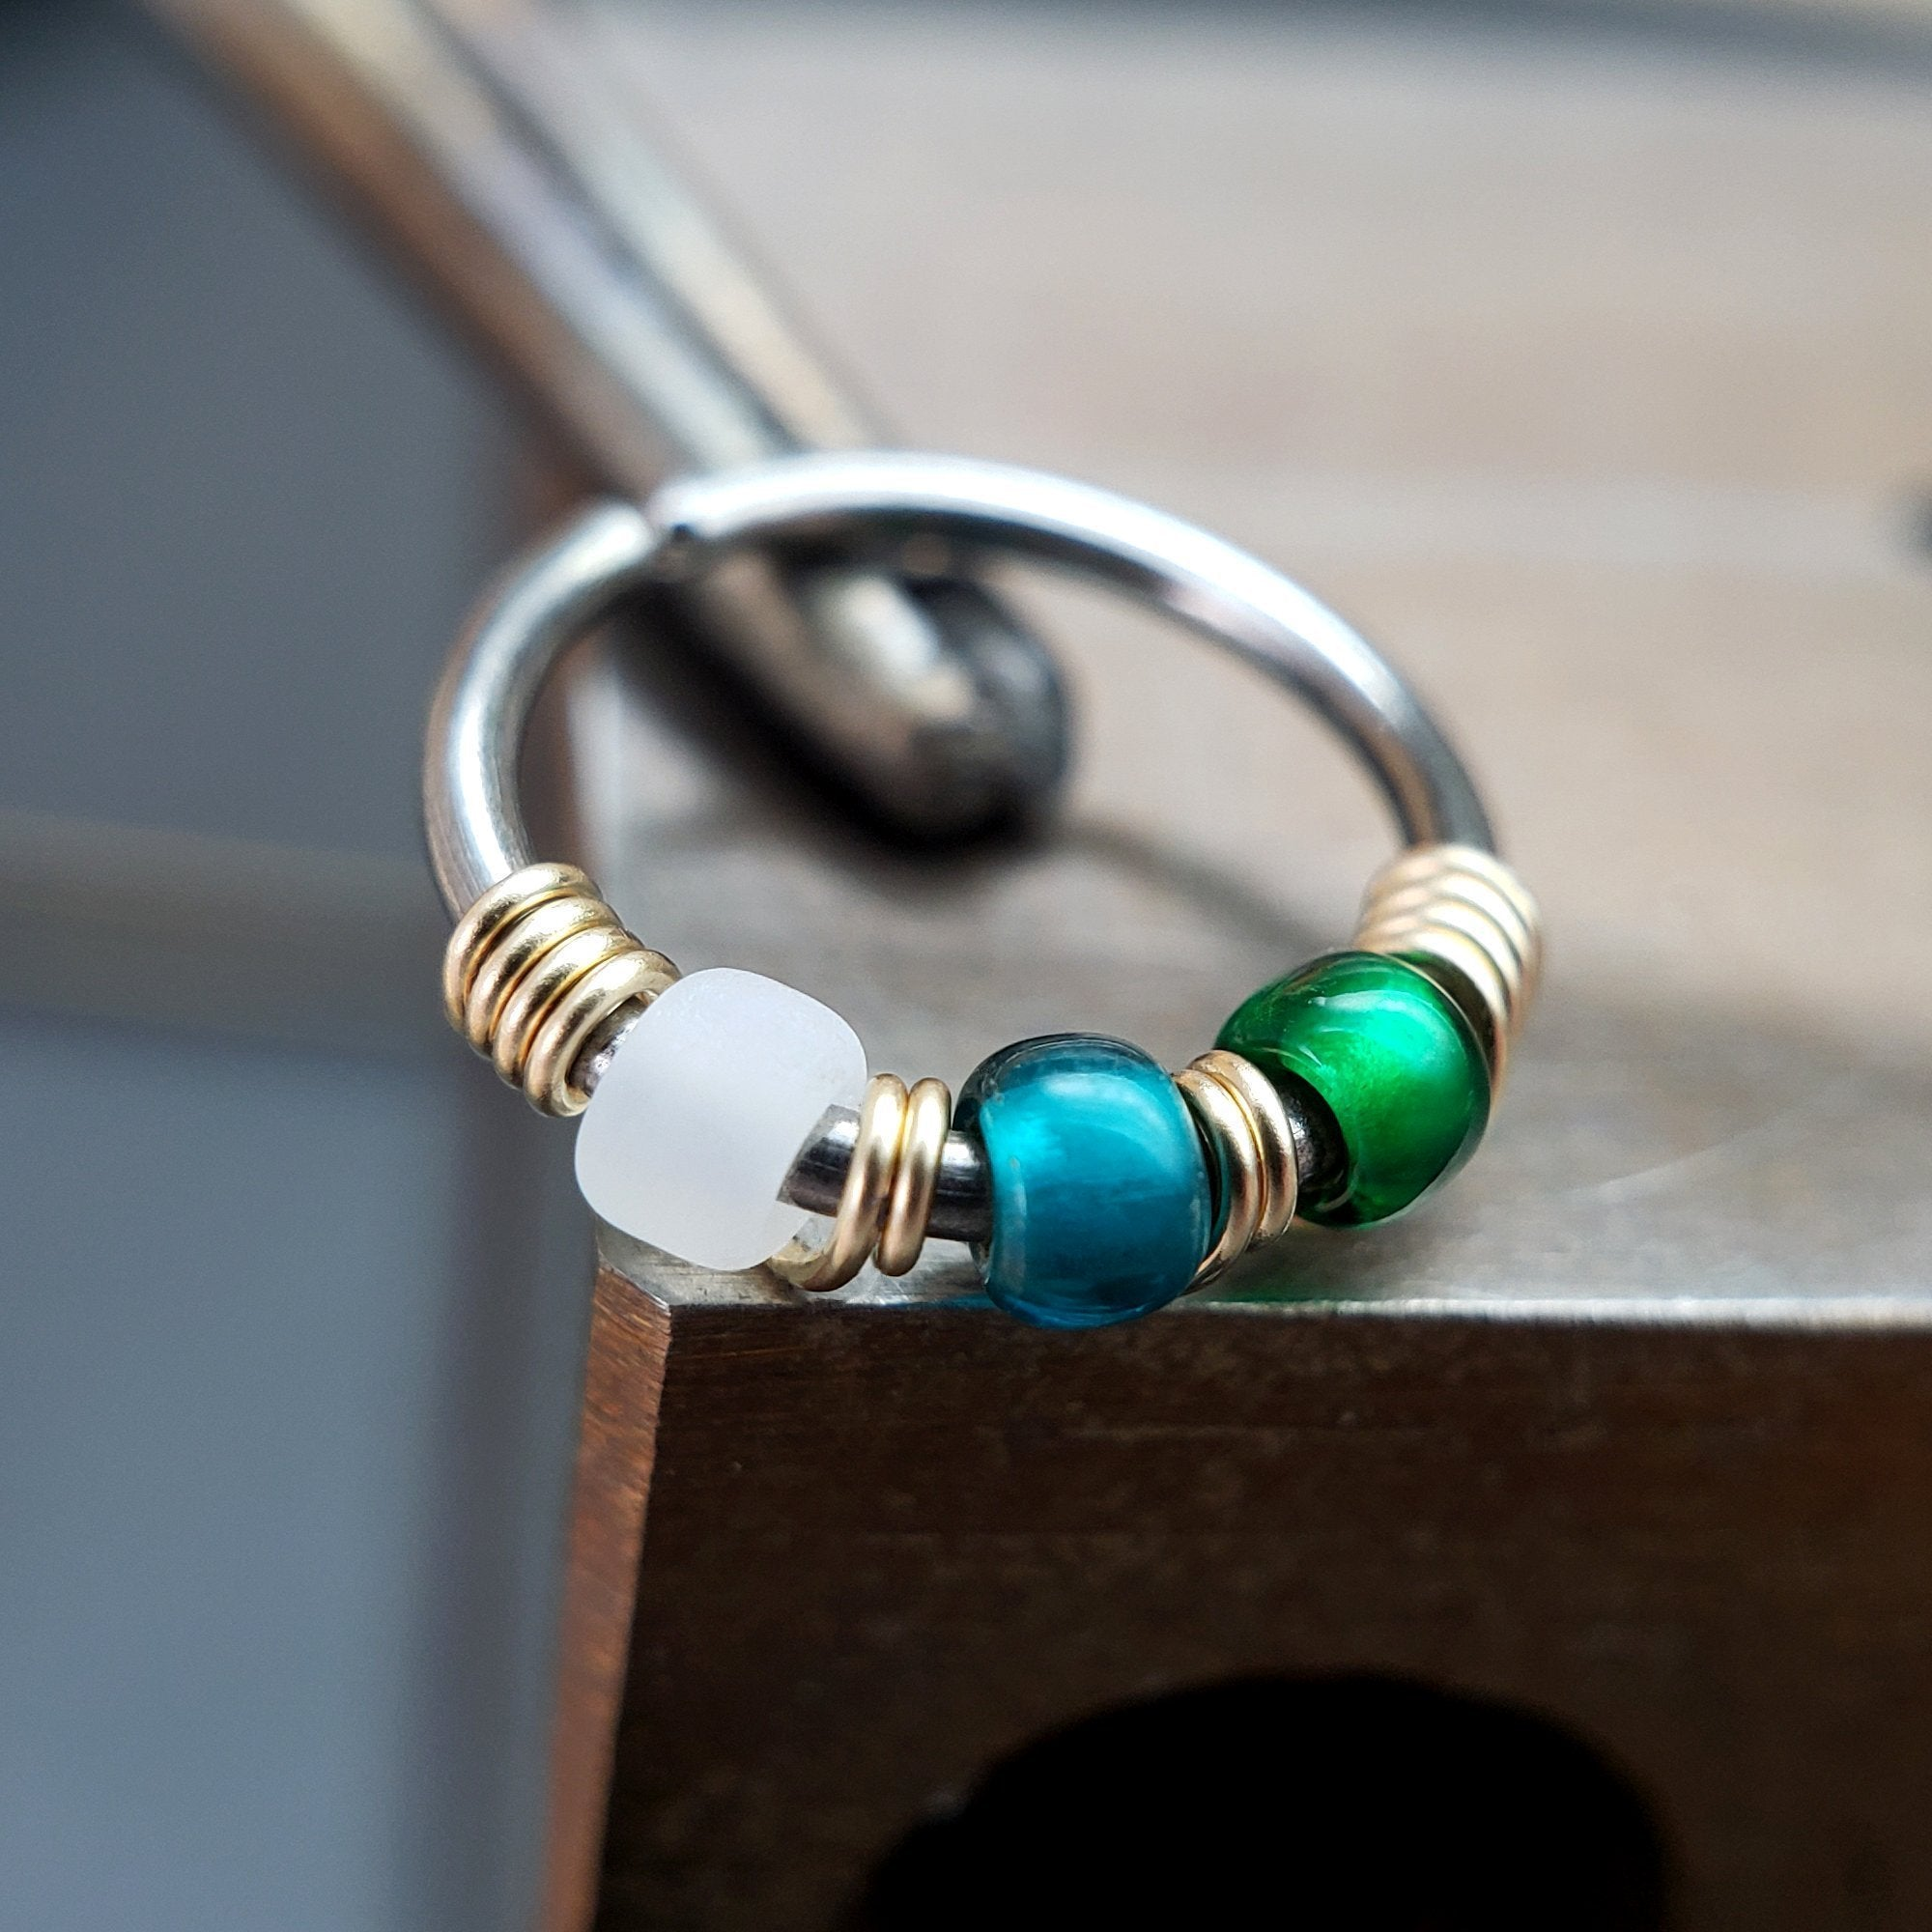 Alpine - Emerald & Teal Nose Ring Hoop - Metal Lotus